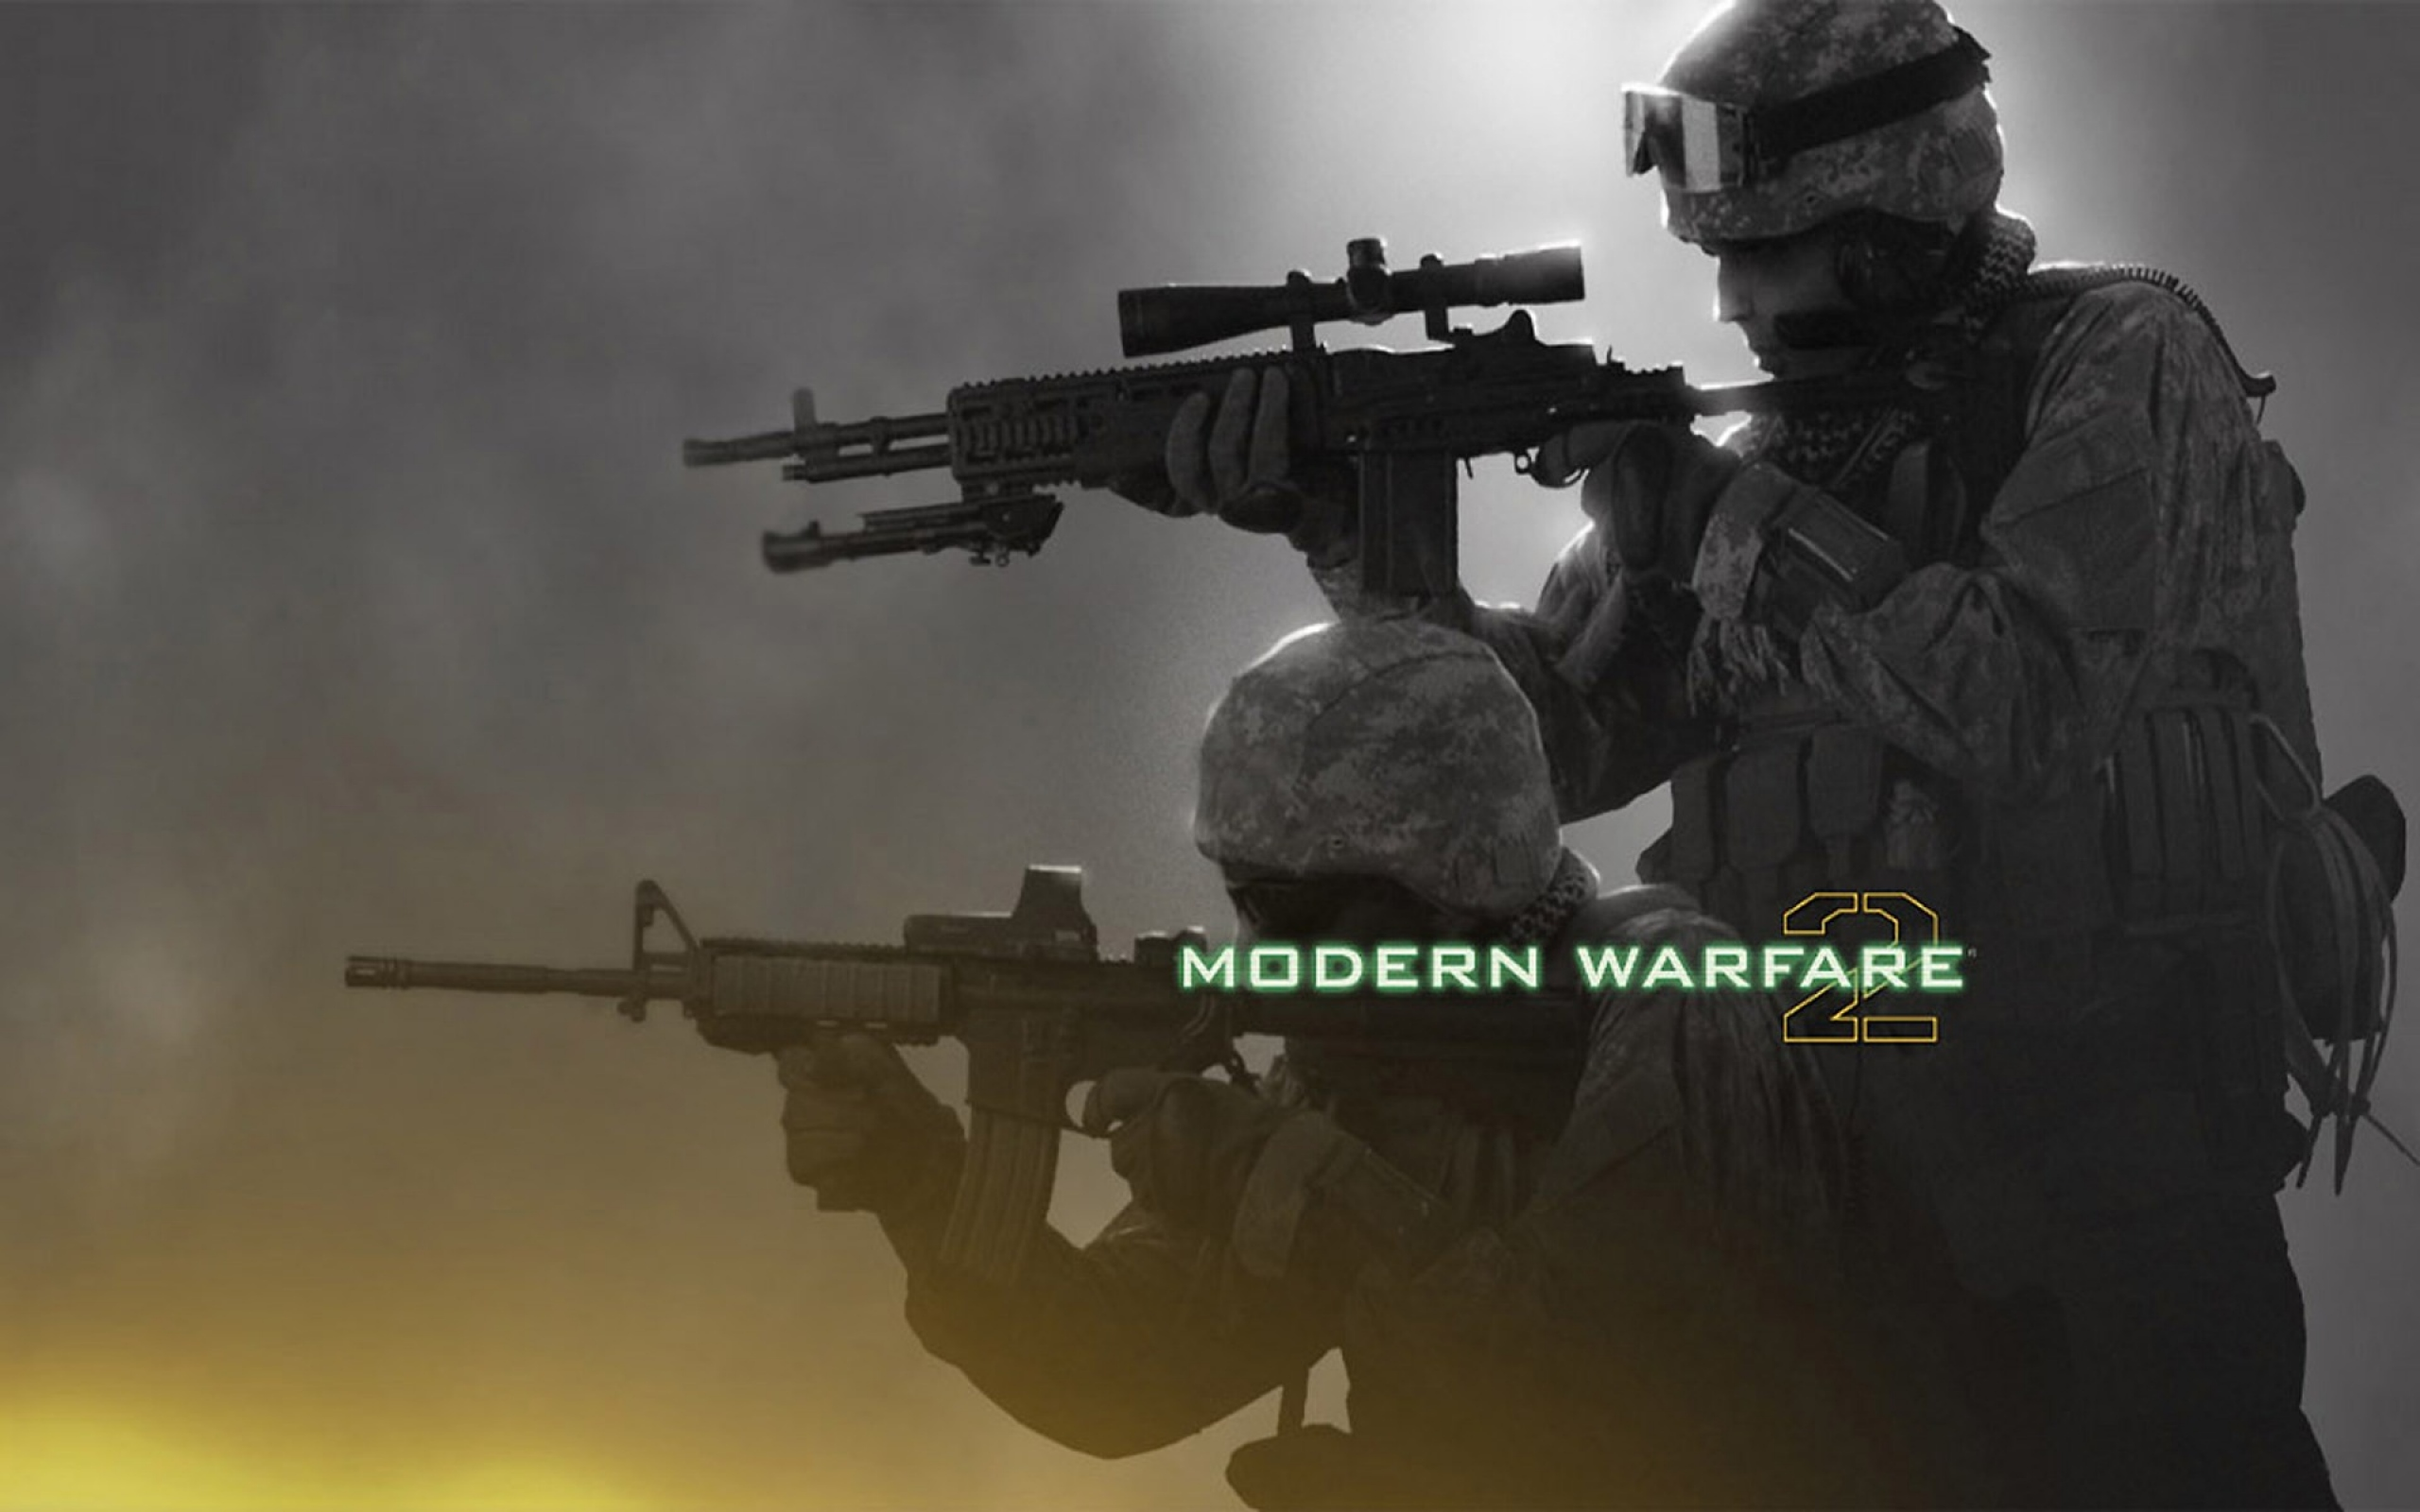 Gameboy Iphone X Wallpaper Modern Warfare 2 Wallpapers Modern Warfare 2 Stock Photos